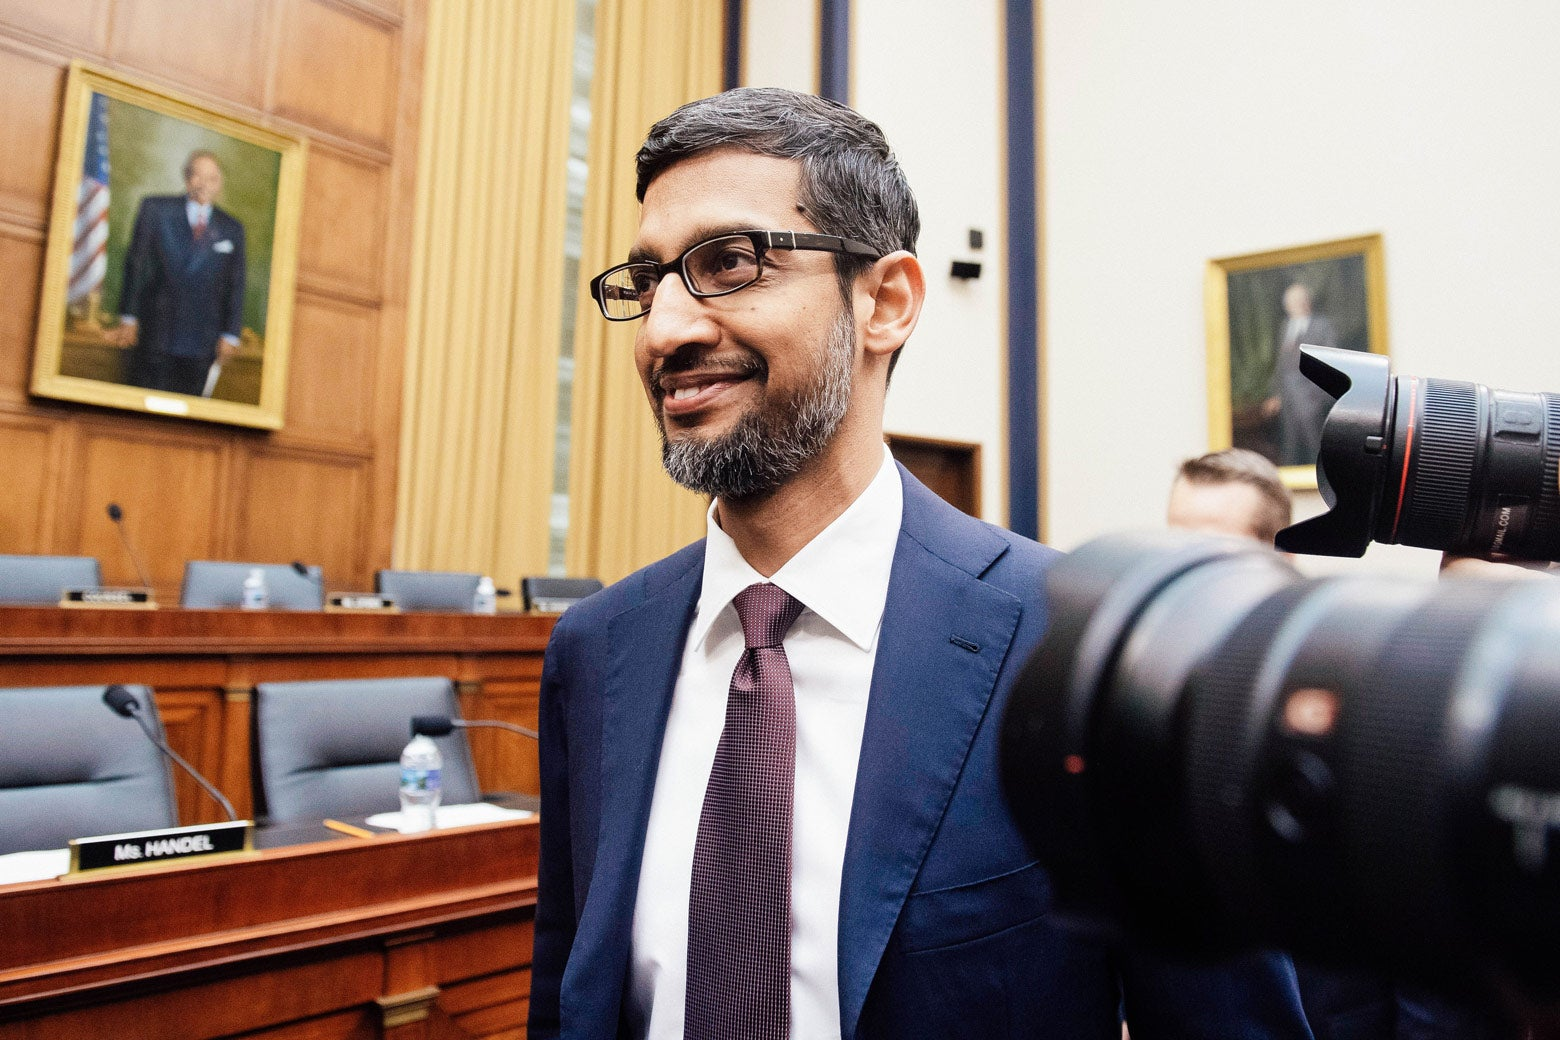 Google CEO Sundar Pichai smiles in profile for the press cameras as he arrives to testify during a House Judiciary Committee hearing in Washington on Tuesday.